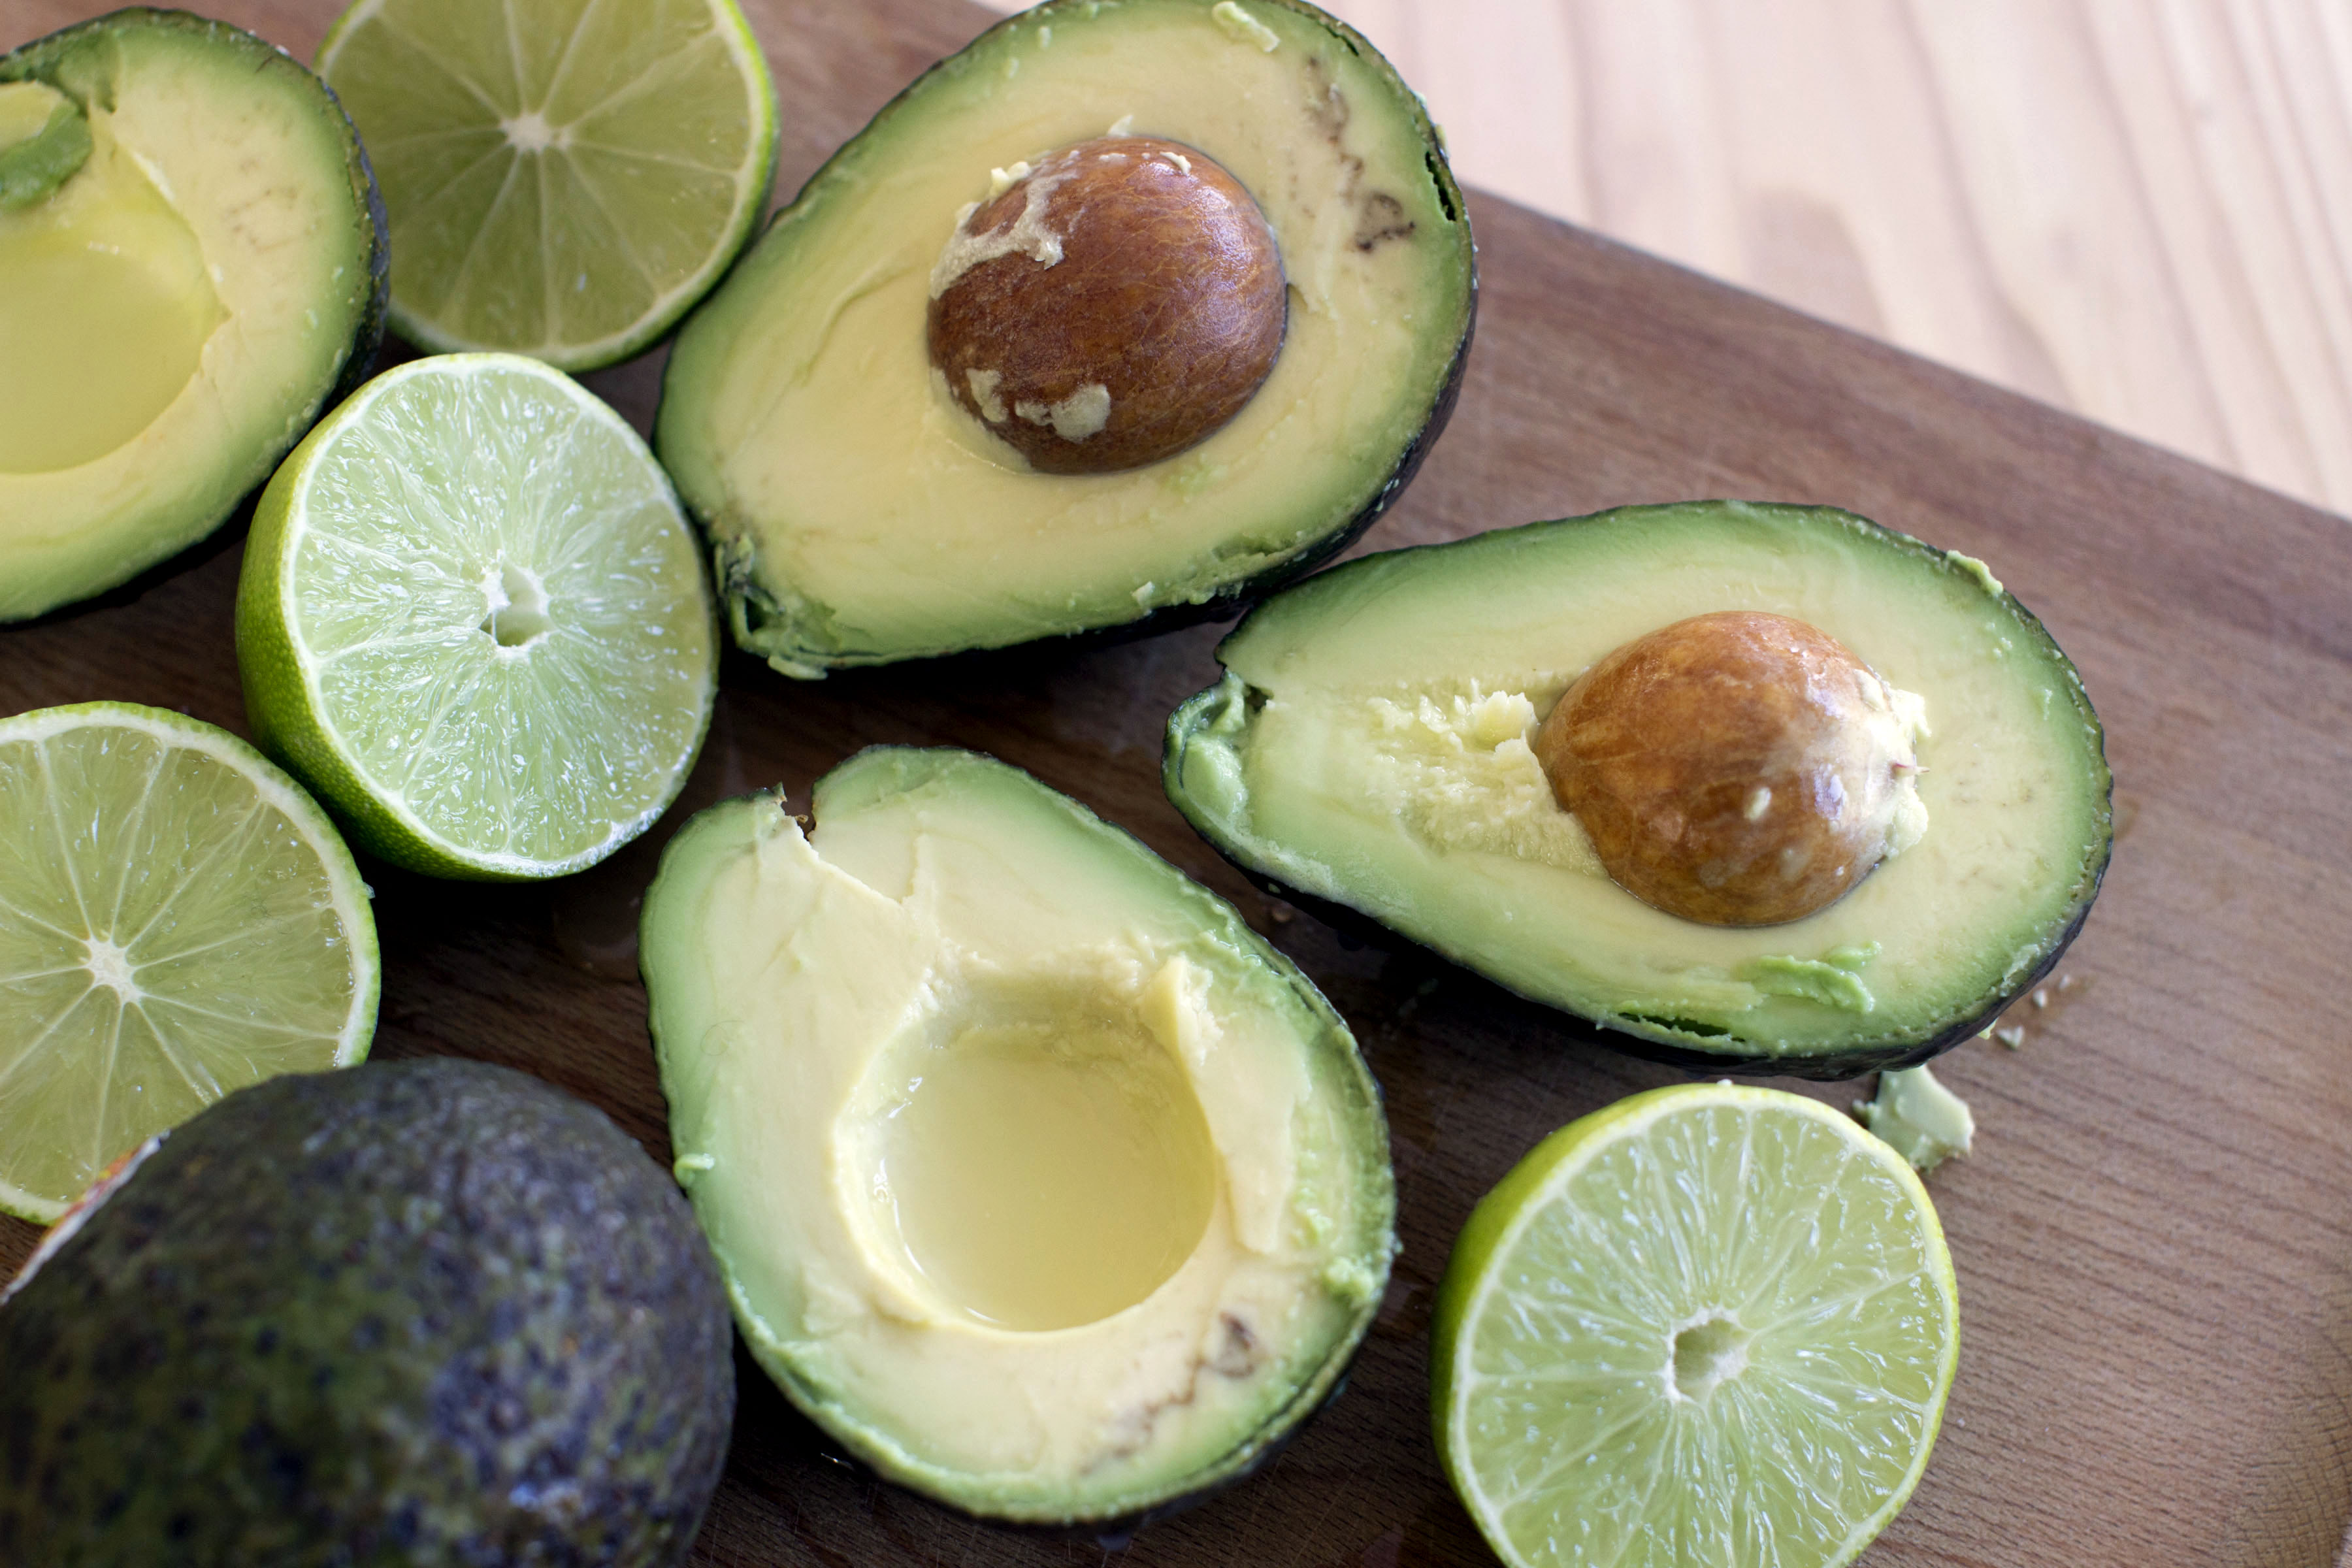 A superfood scare: Are avocados, almonds in danger due to drought?